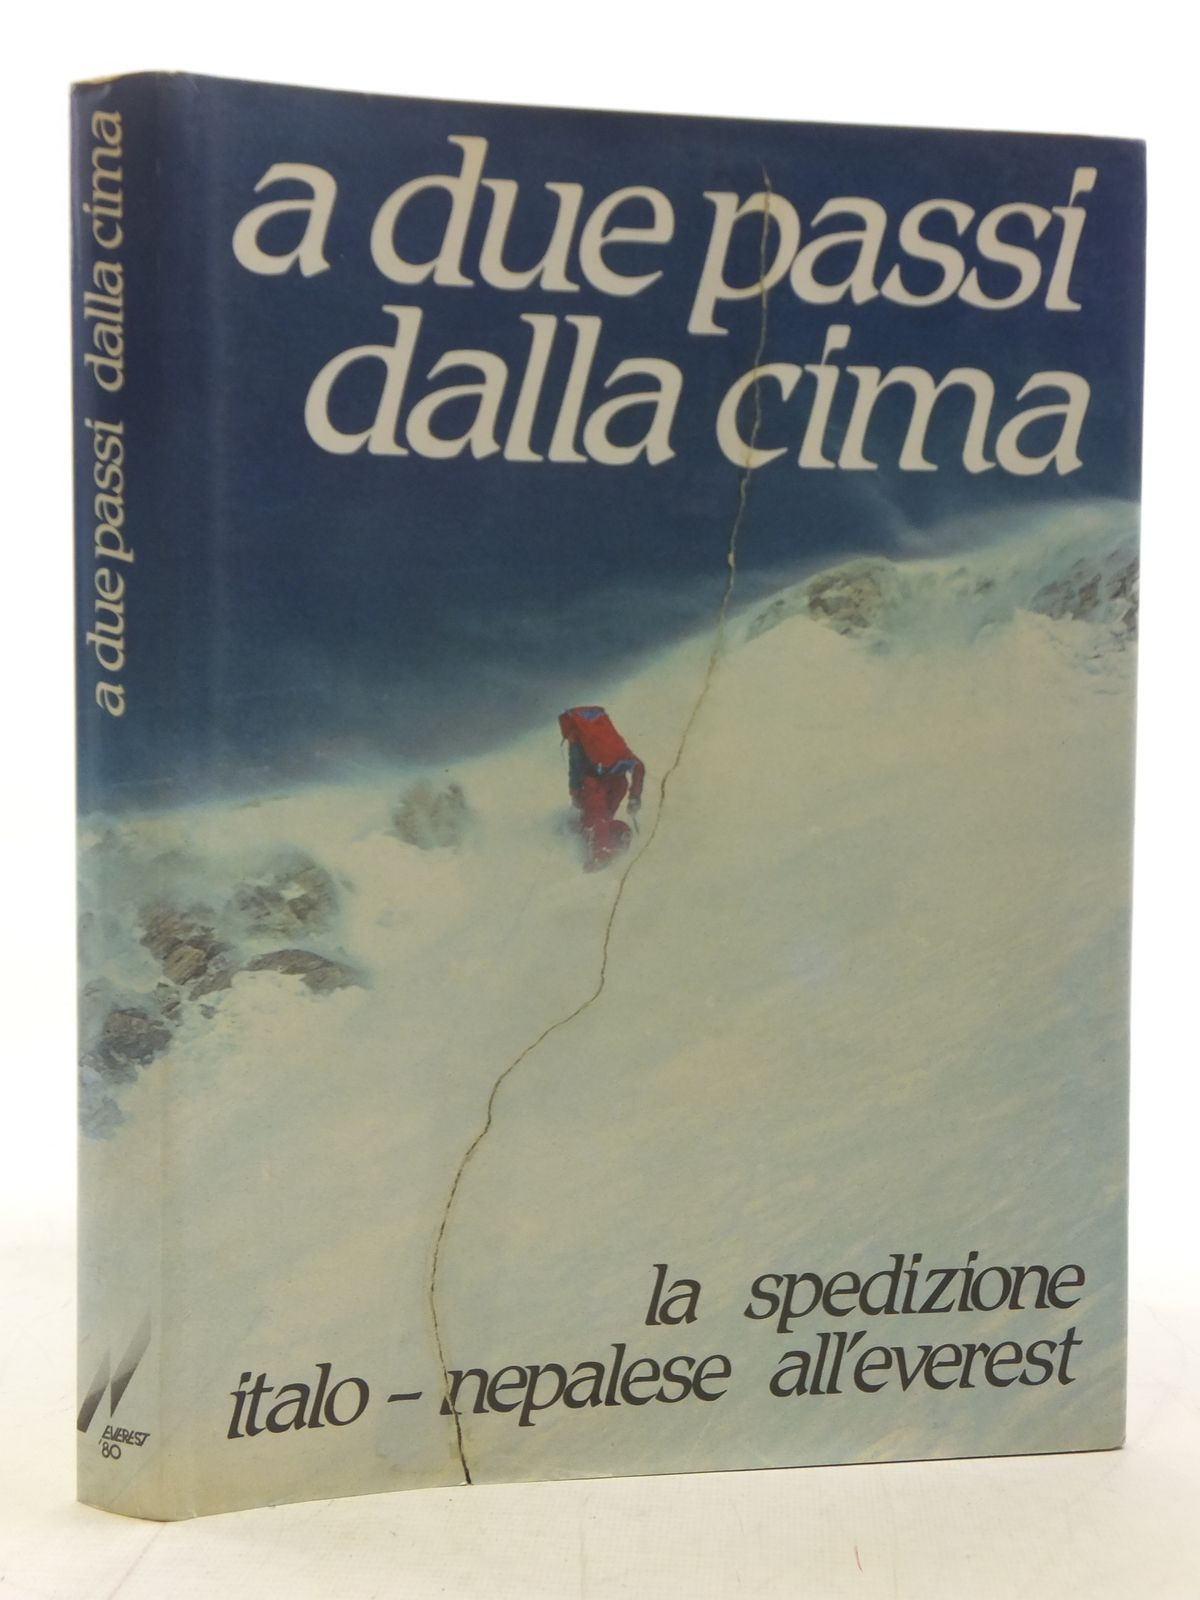 Photo of A DUE PASSI DALLA CIMA written by Favaro, Adriano published by Everest 80 (STOCK CODE: 1606234)  for sale by Stella & Rose's Books